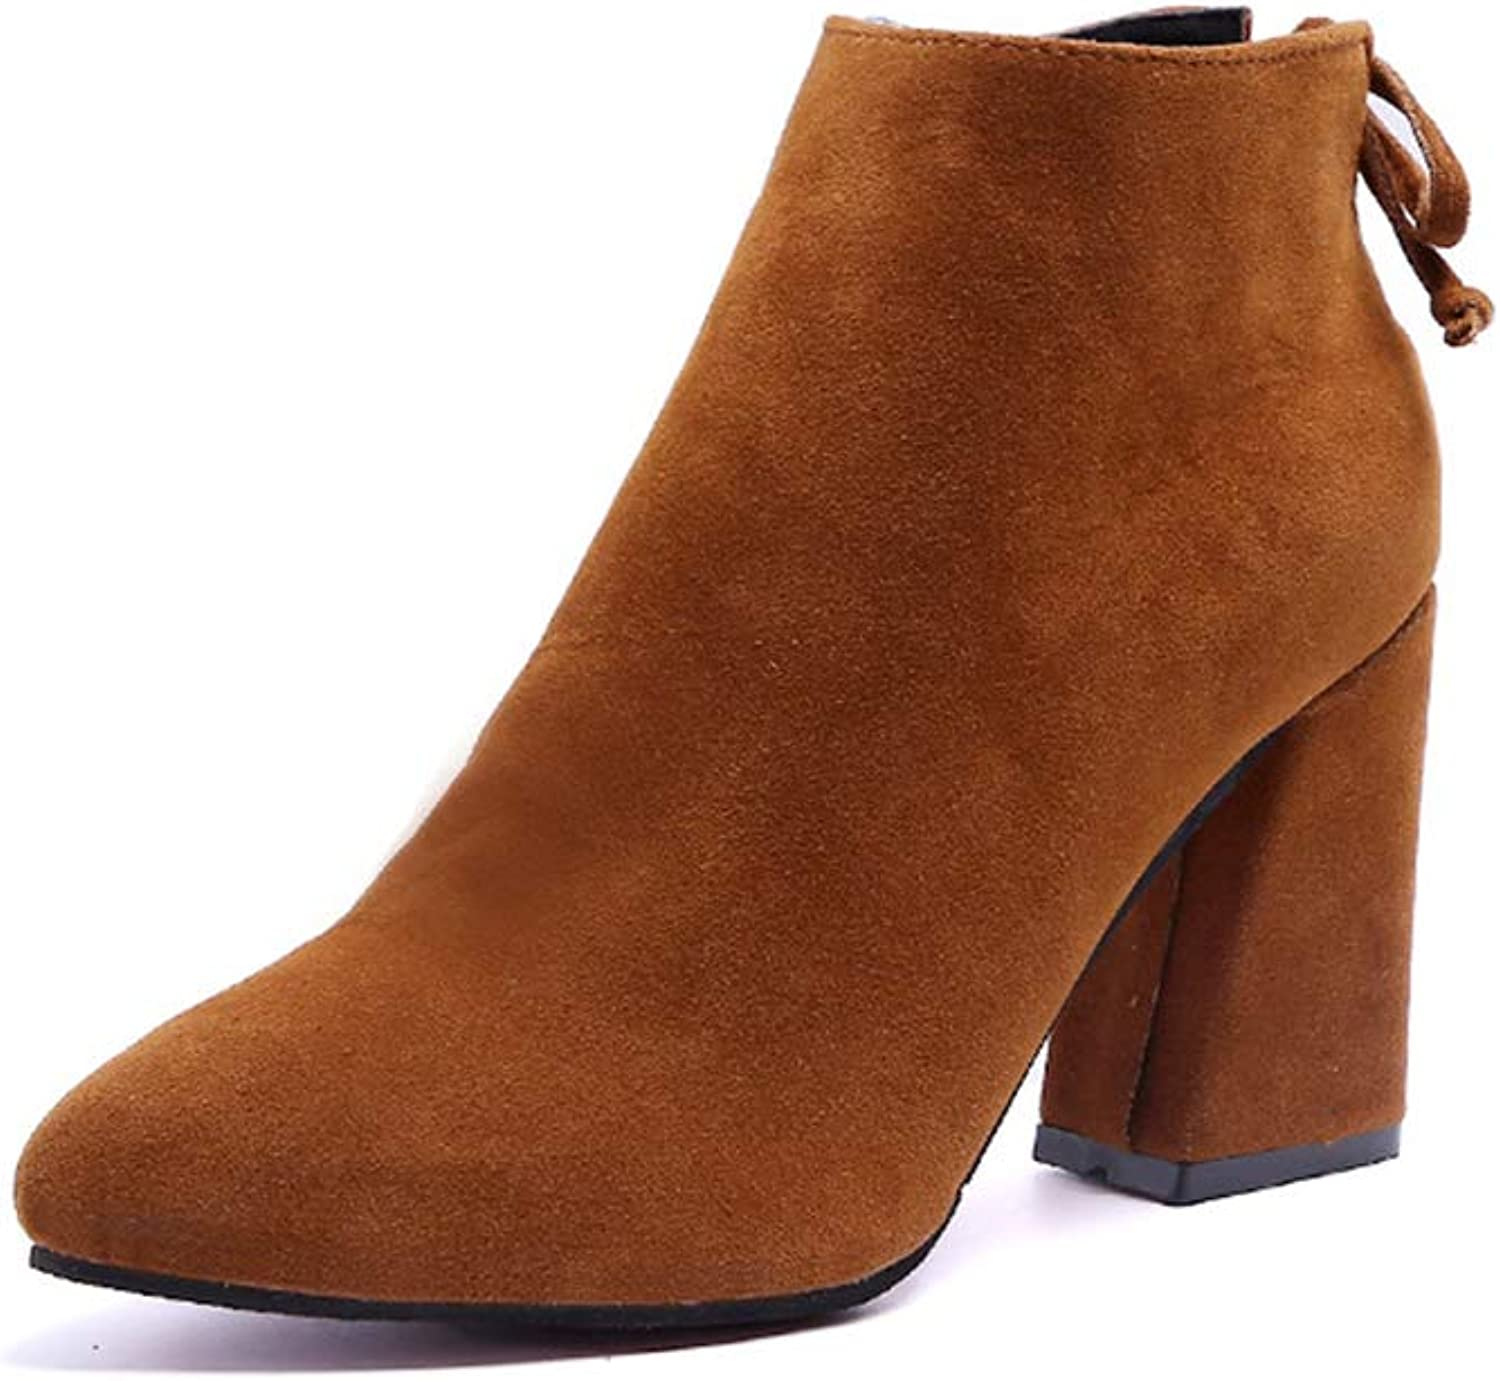 Women's Suede Boots Side Zipper Rear Strap Boots Boots Bare Boots Thick Heel Boots